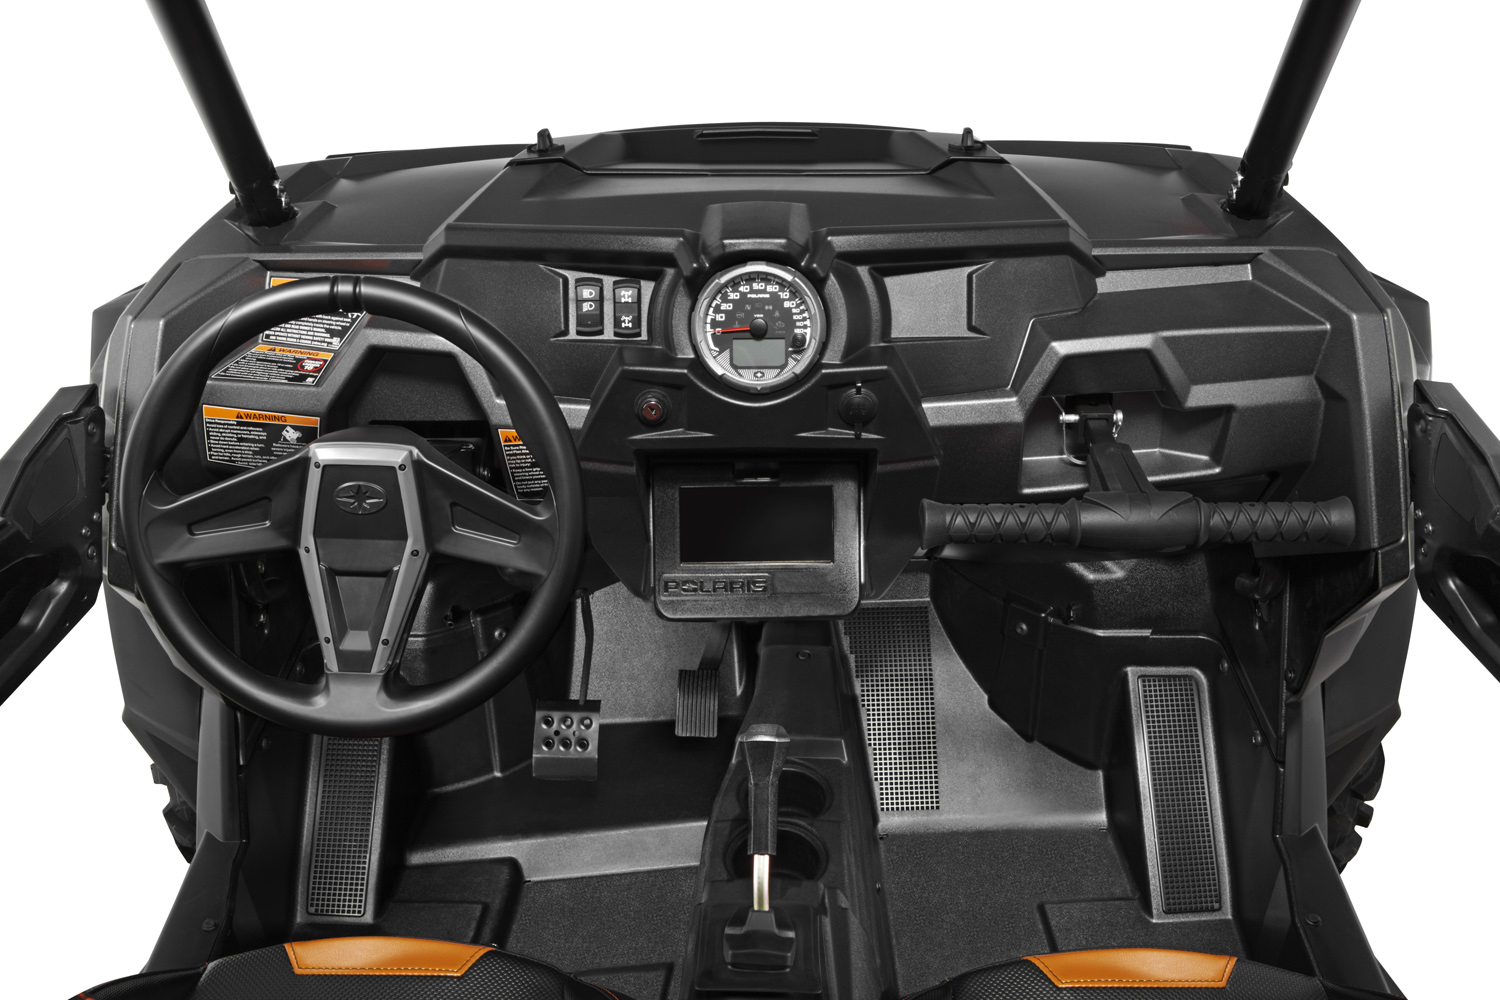 polaris unveils new 2014 rzr xp 1000 powersports business polaris ranger service manual Polaris Ranger 900 XP Wiring Diagram polaris wiring diagram 2014 rzr 900